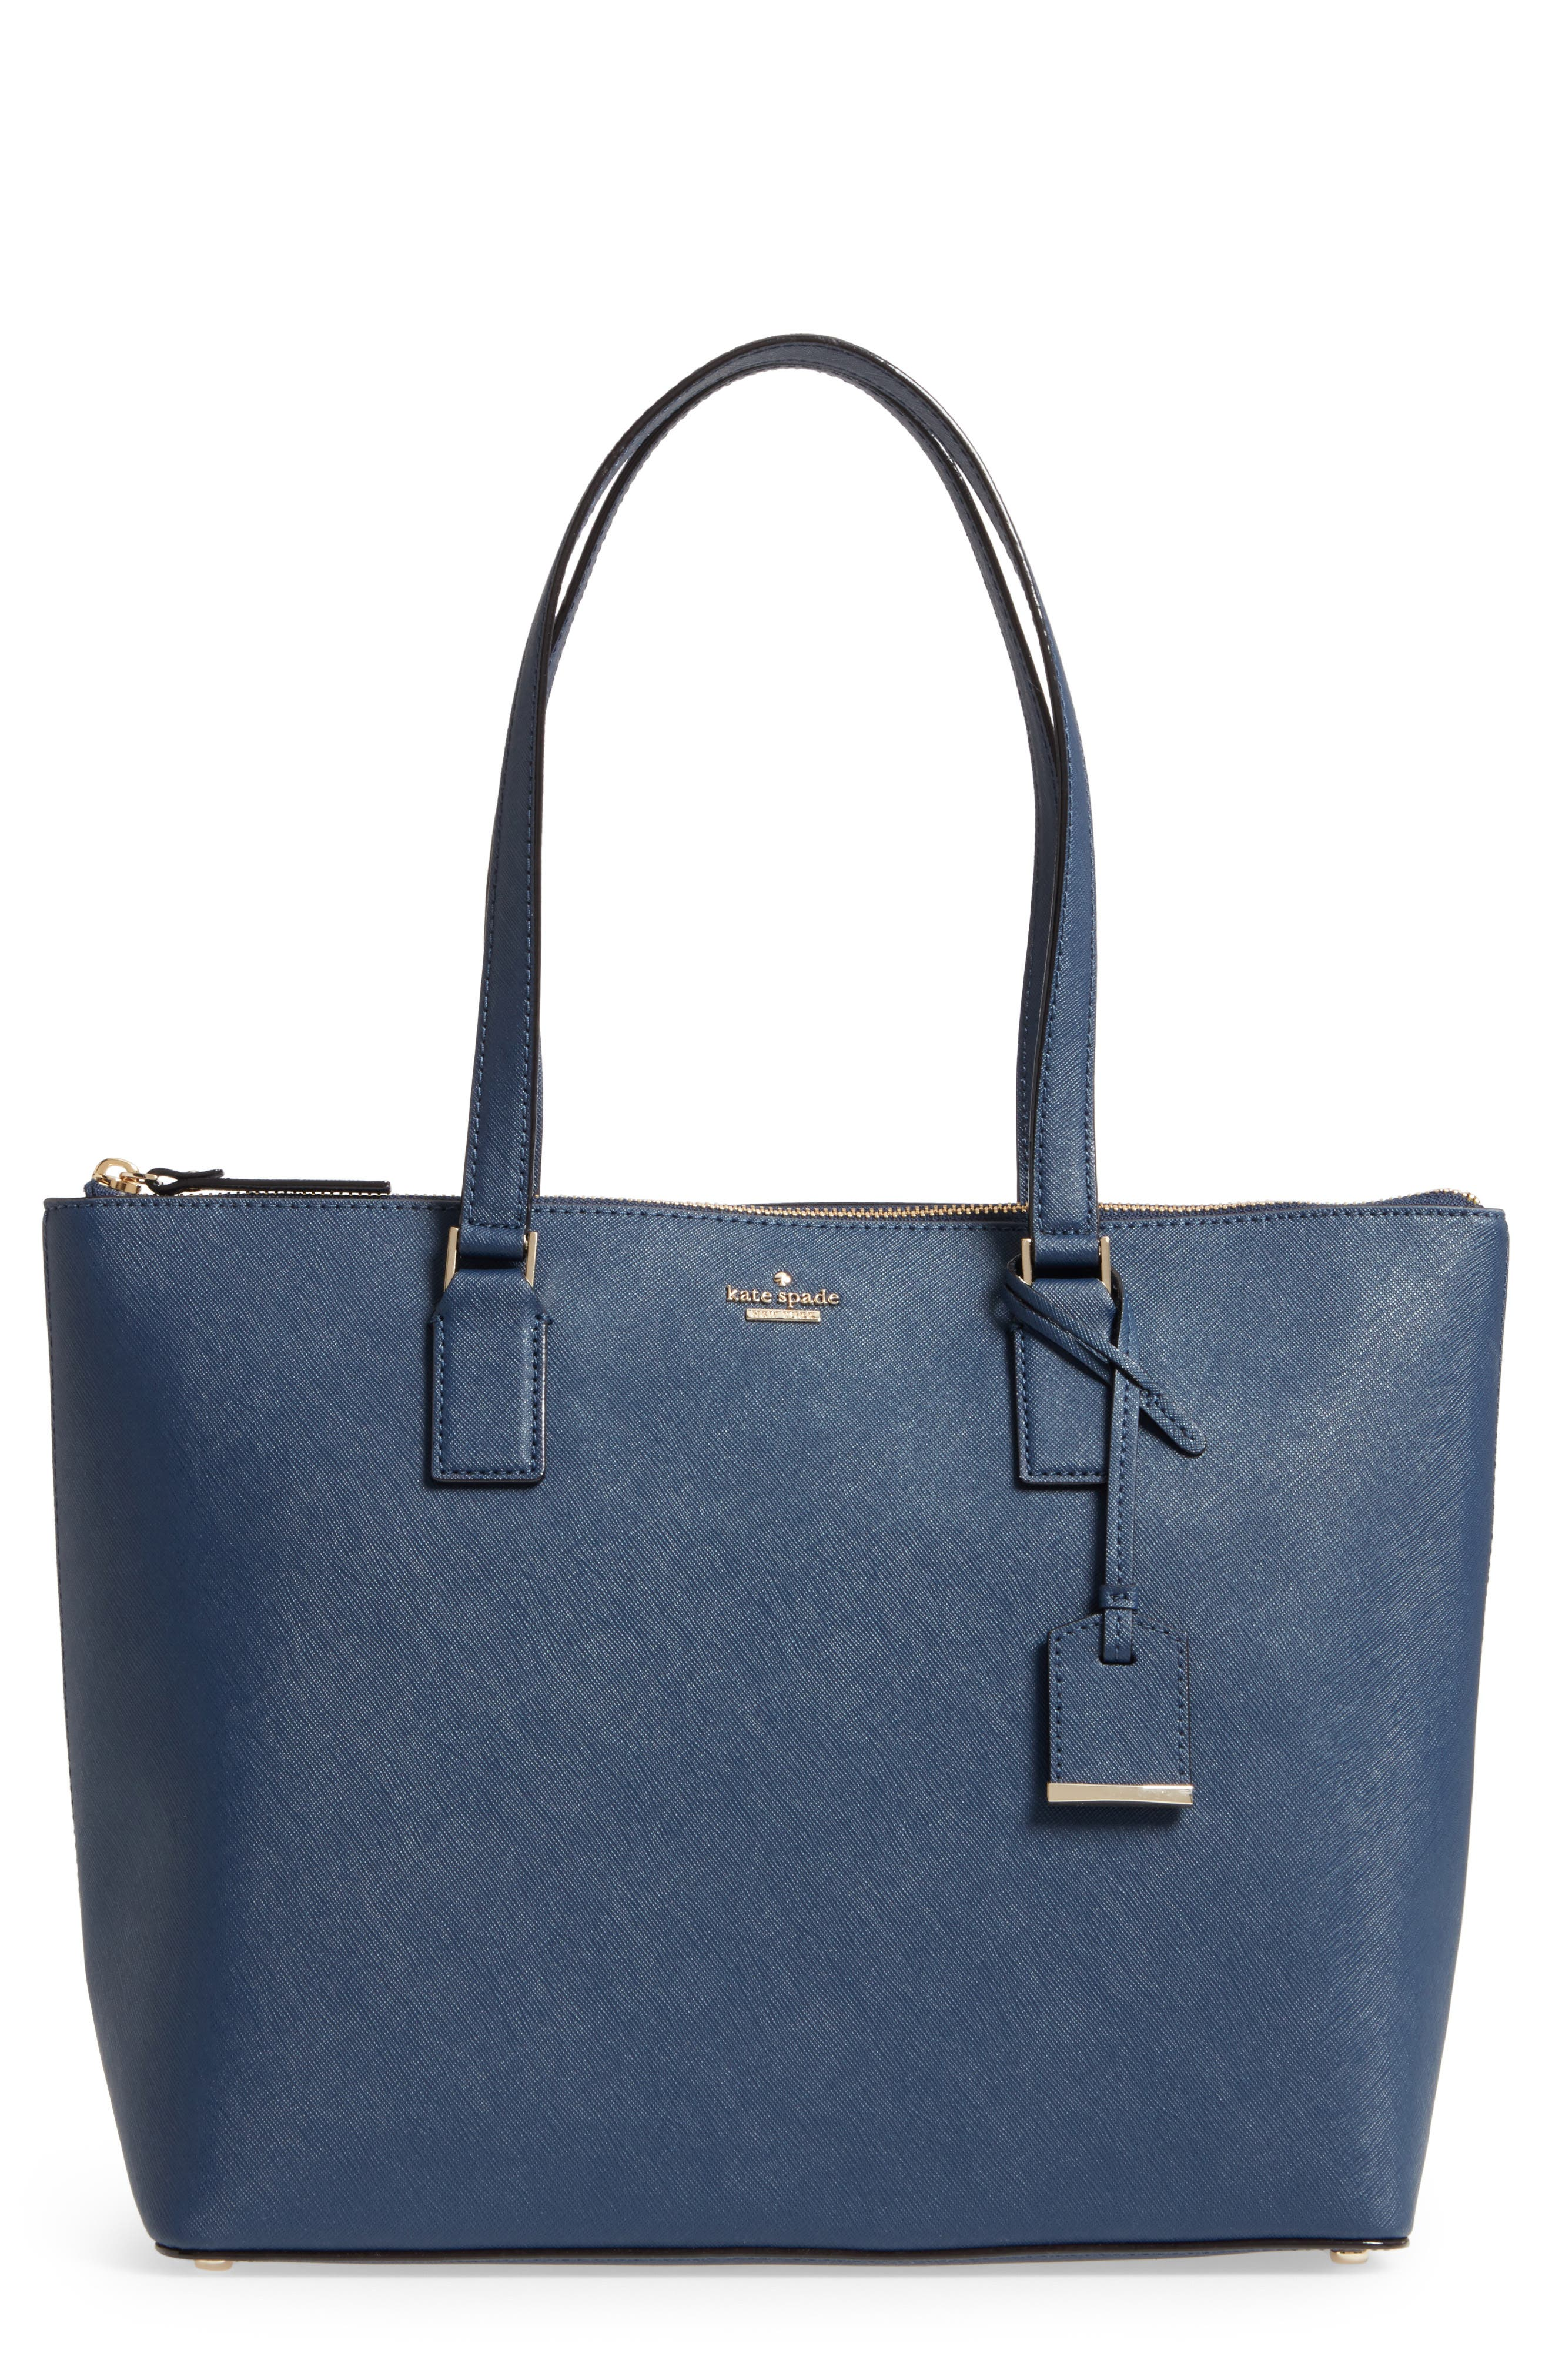 'cameron street - lucie' tote,                         Main,                         color, Twilight